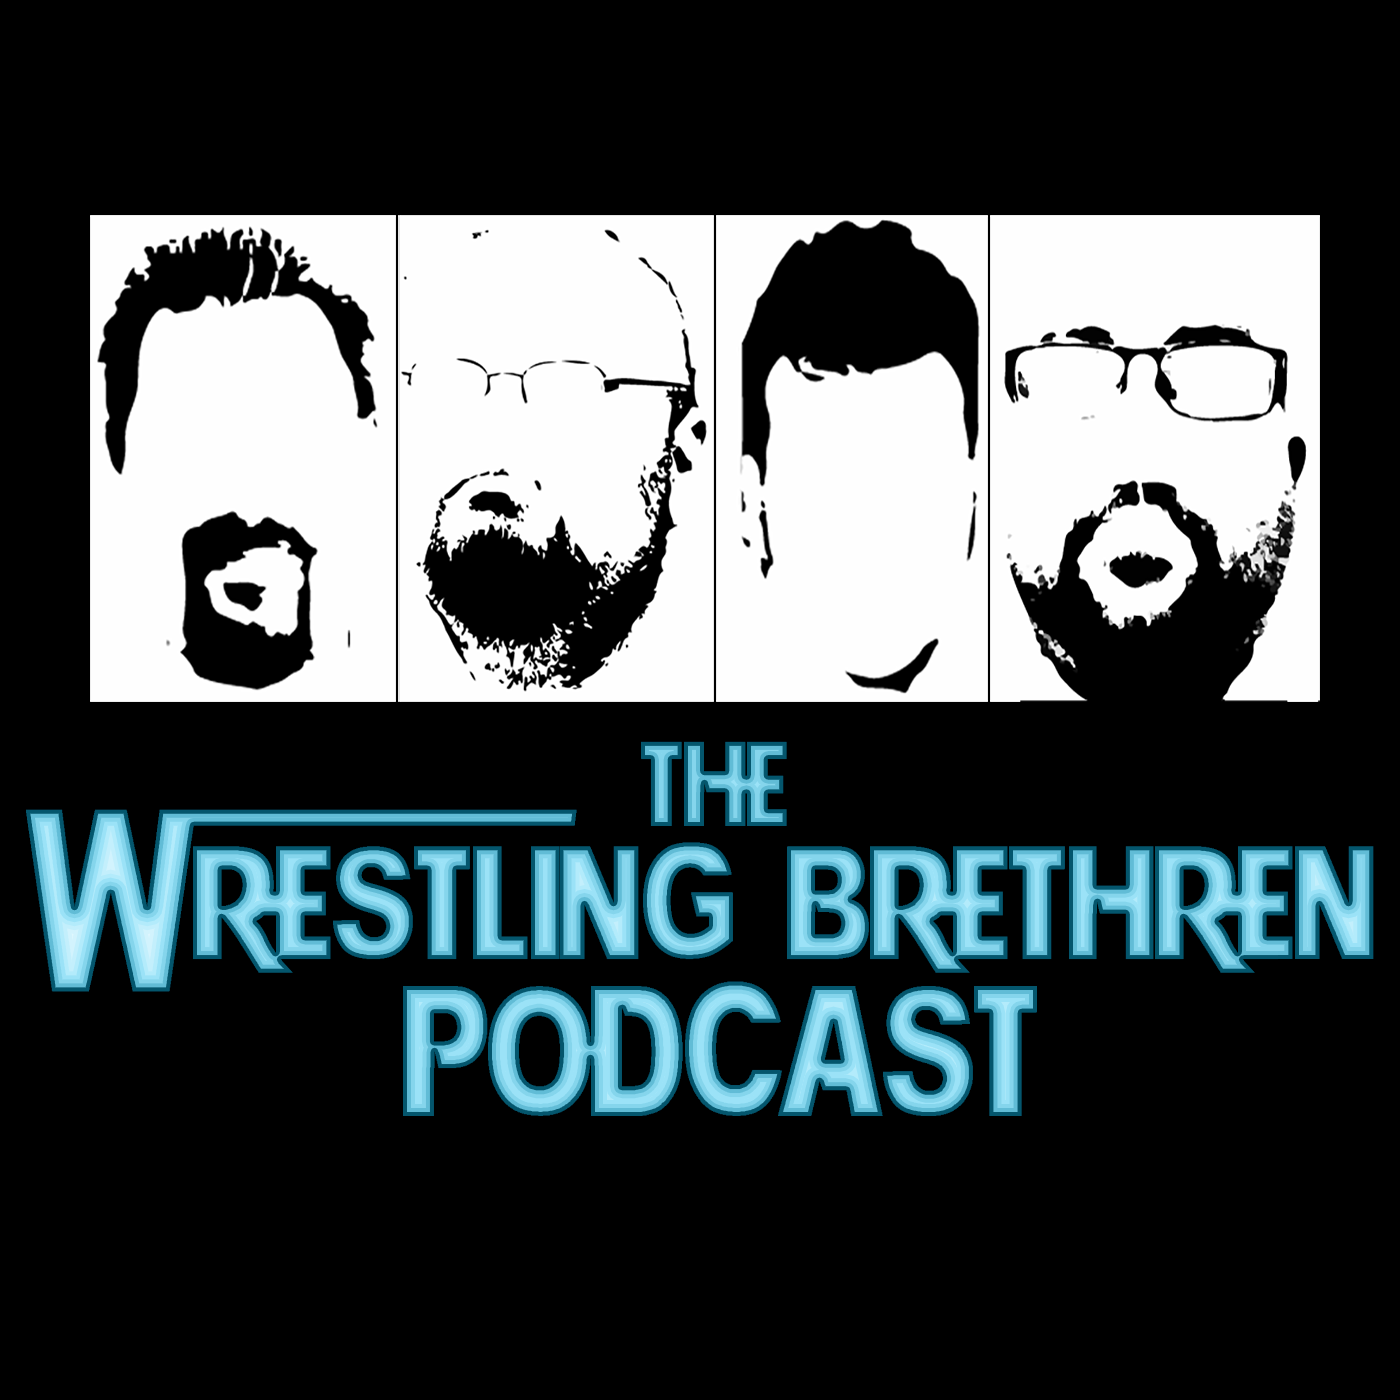 The Wrestling Brethren Podcast